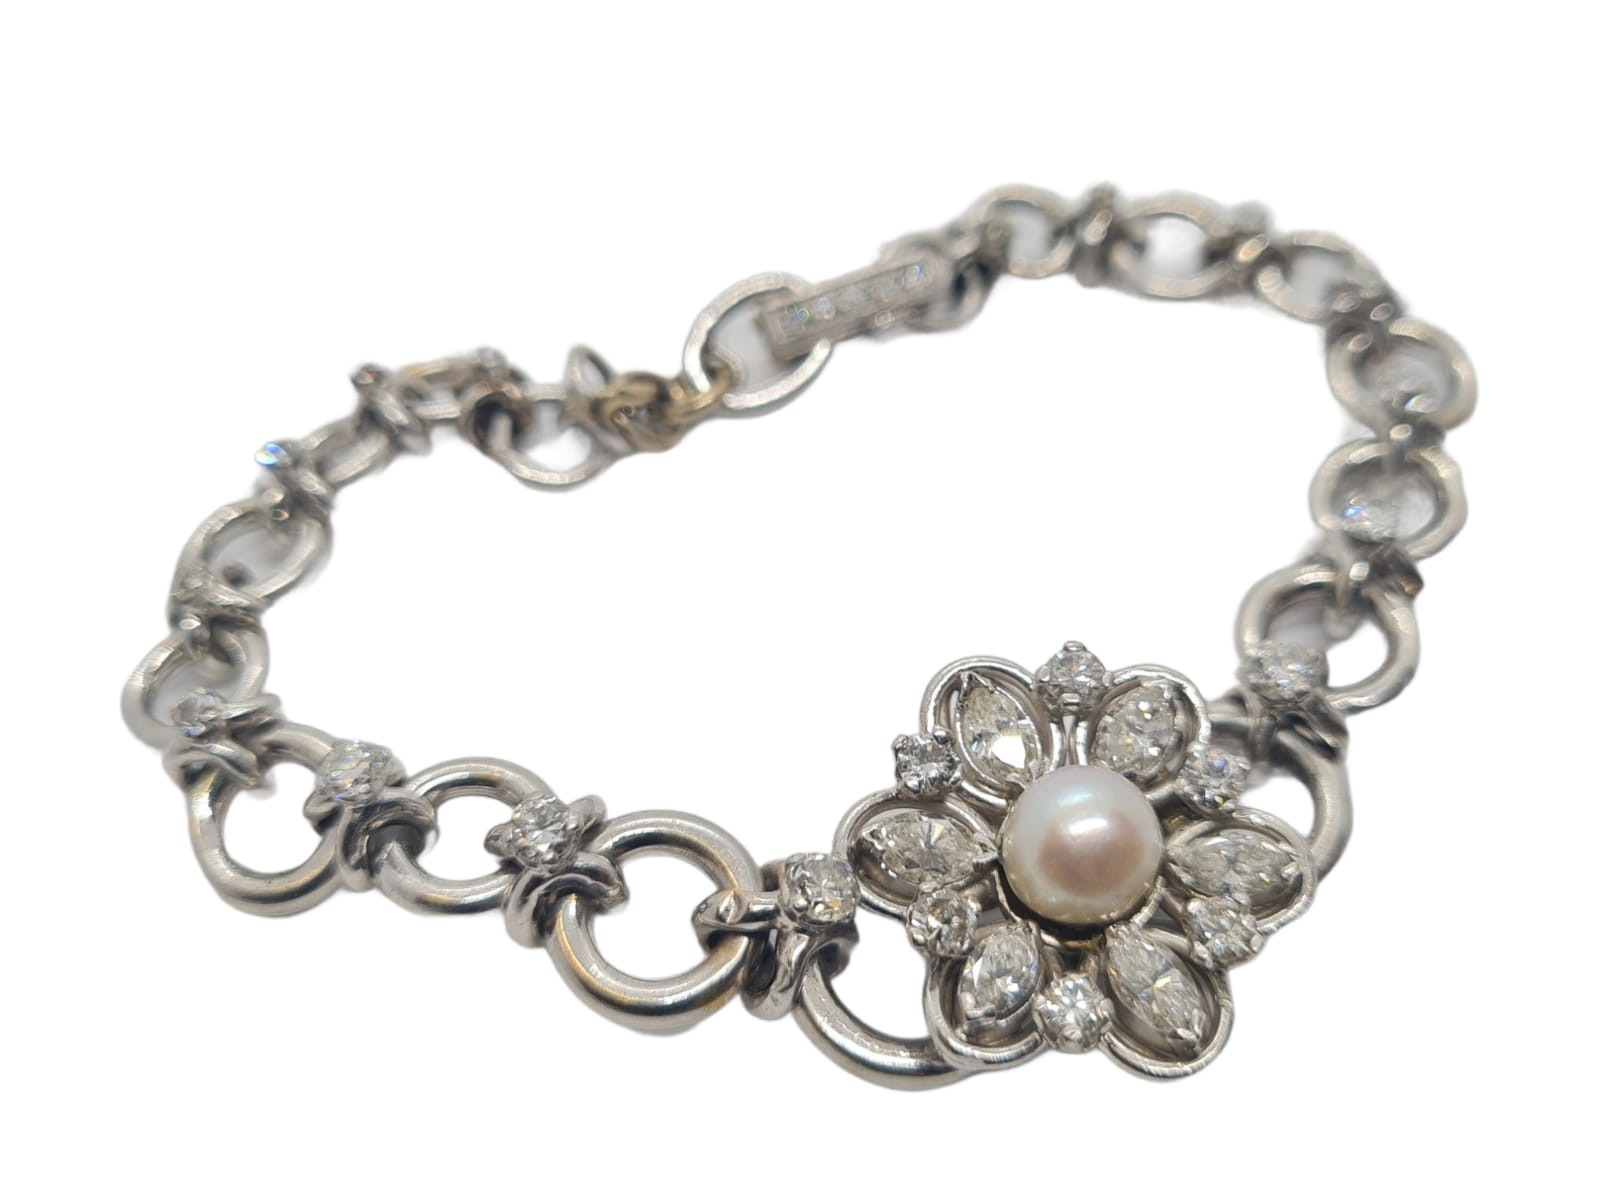 18k white gold French antique diamond and pearl set bracelet, flower design, weight 18.5g approx 2ct